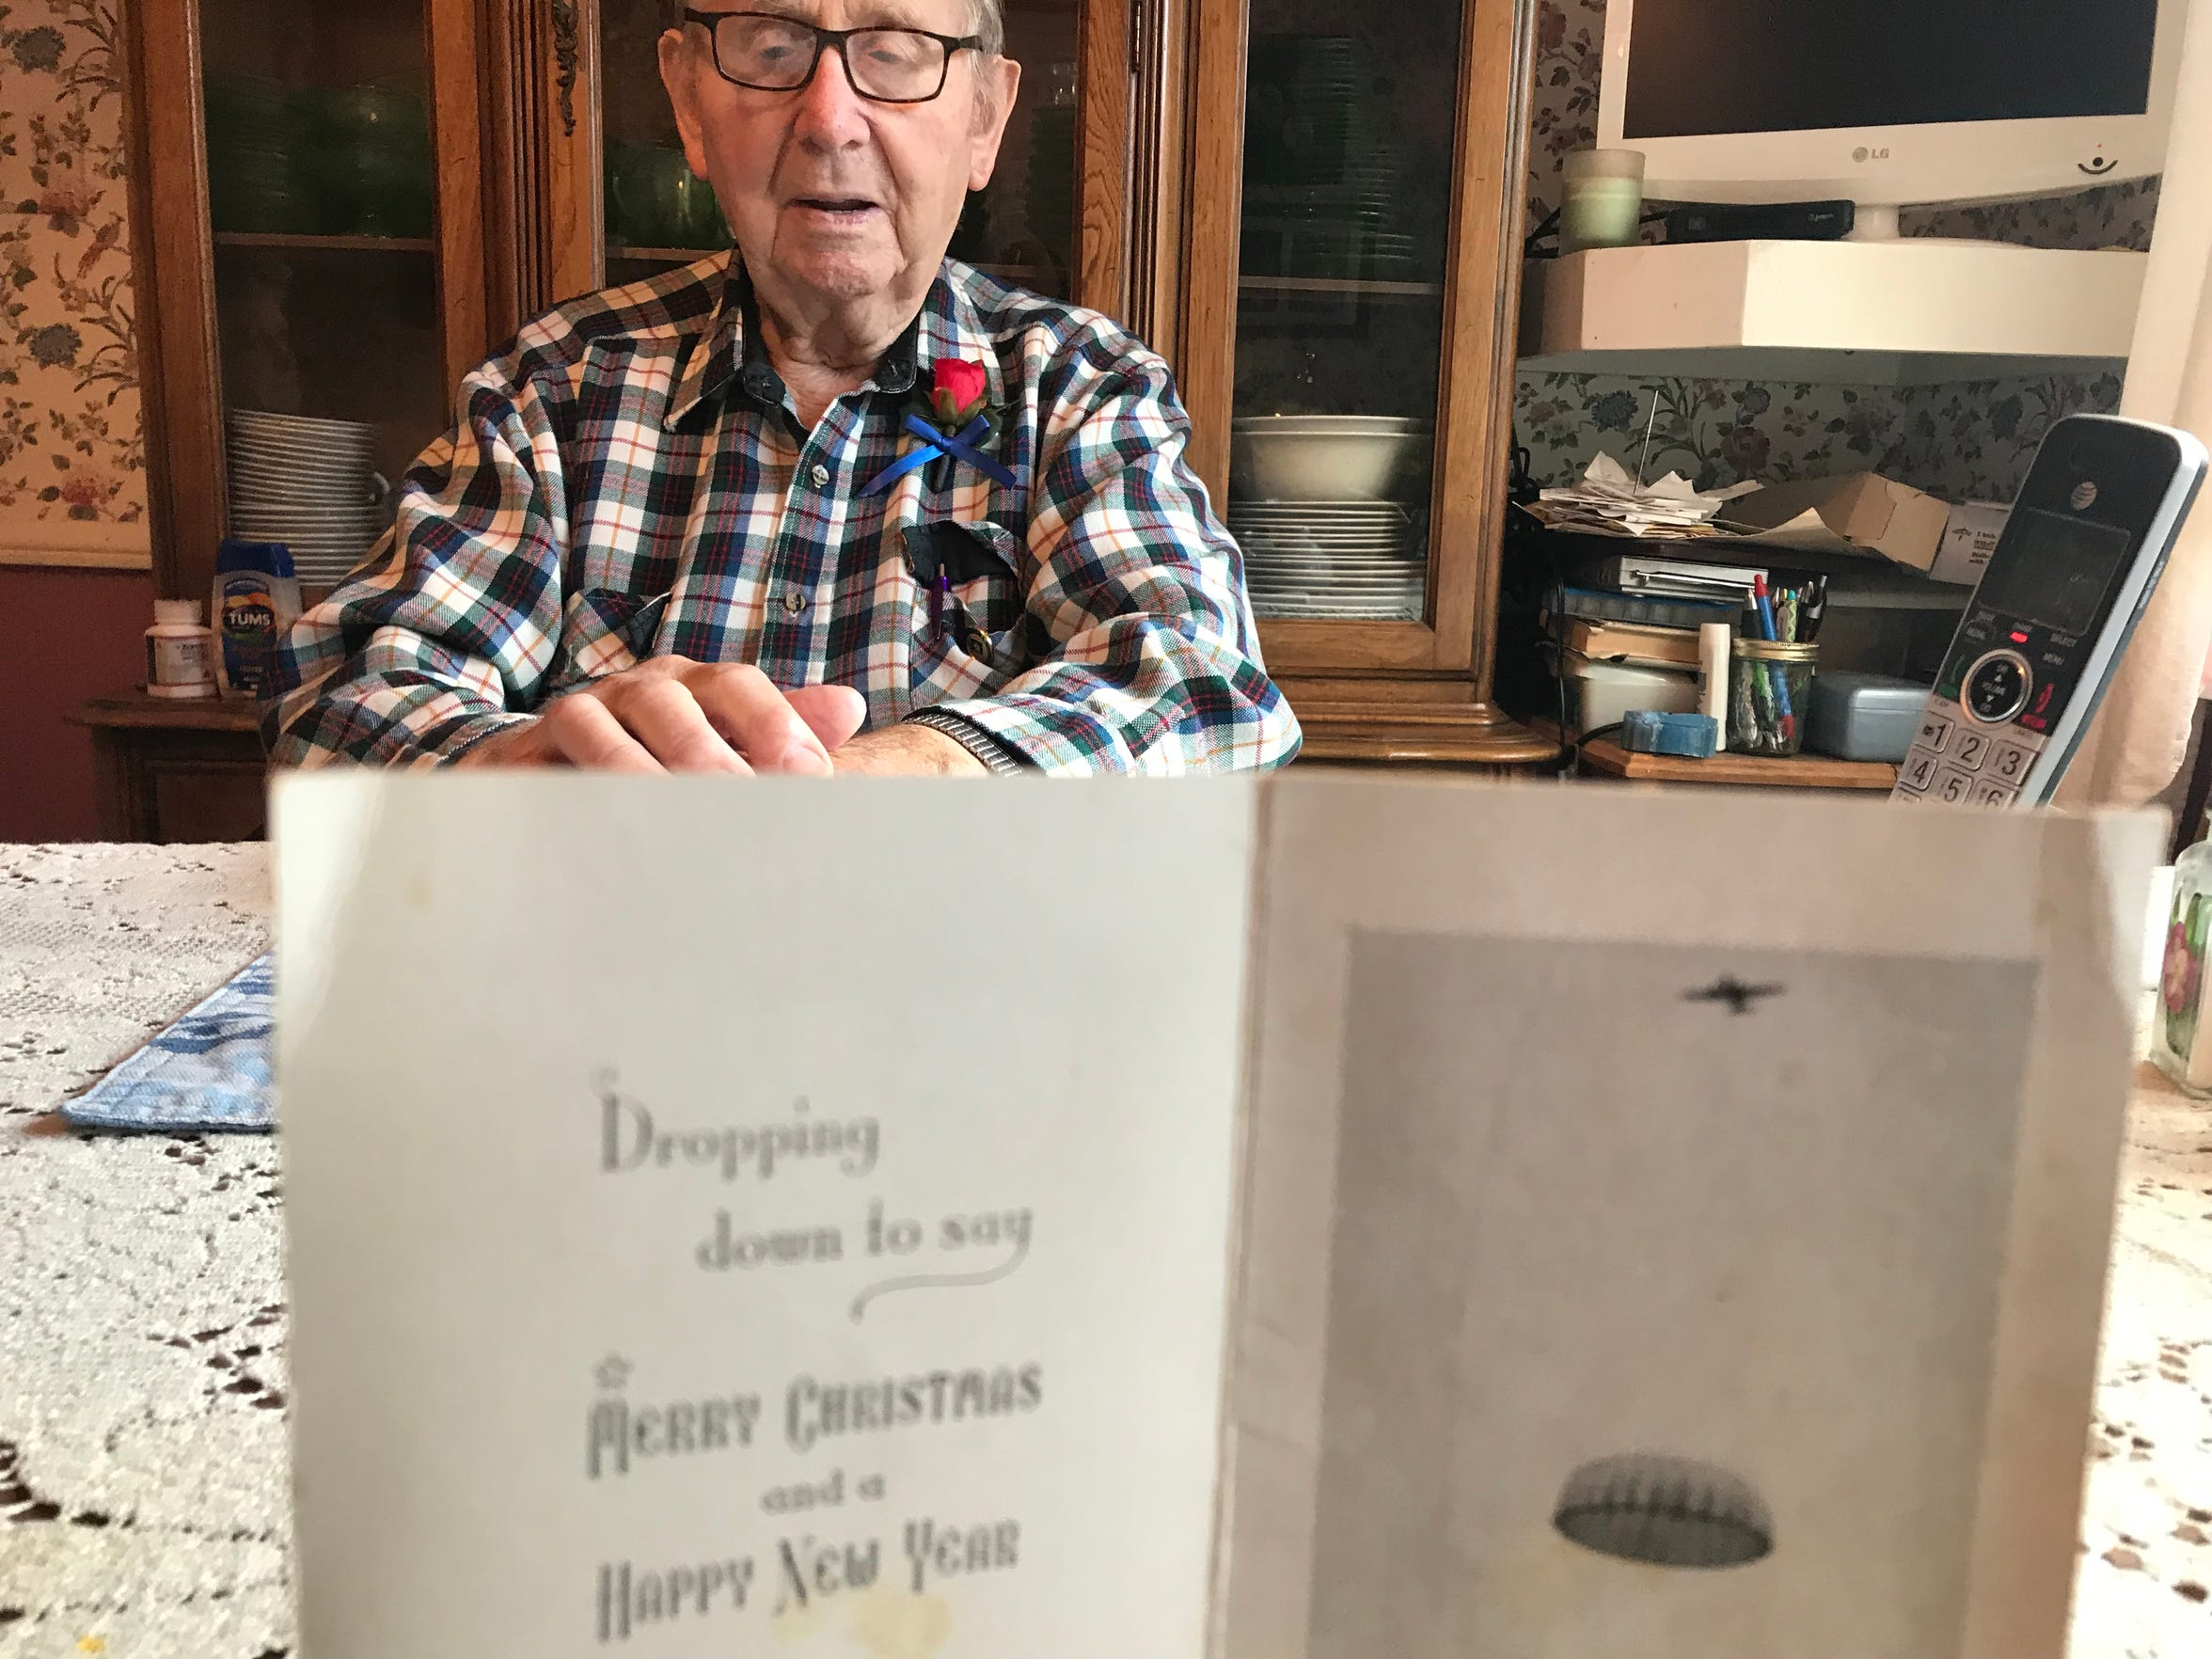 Calvin Haar, 95, talks about his experiences during World War II as a U.S. Army paratrooper. In the foreground is a holiday card he sent to his wife, Betty, from Europe during the war.